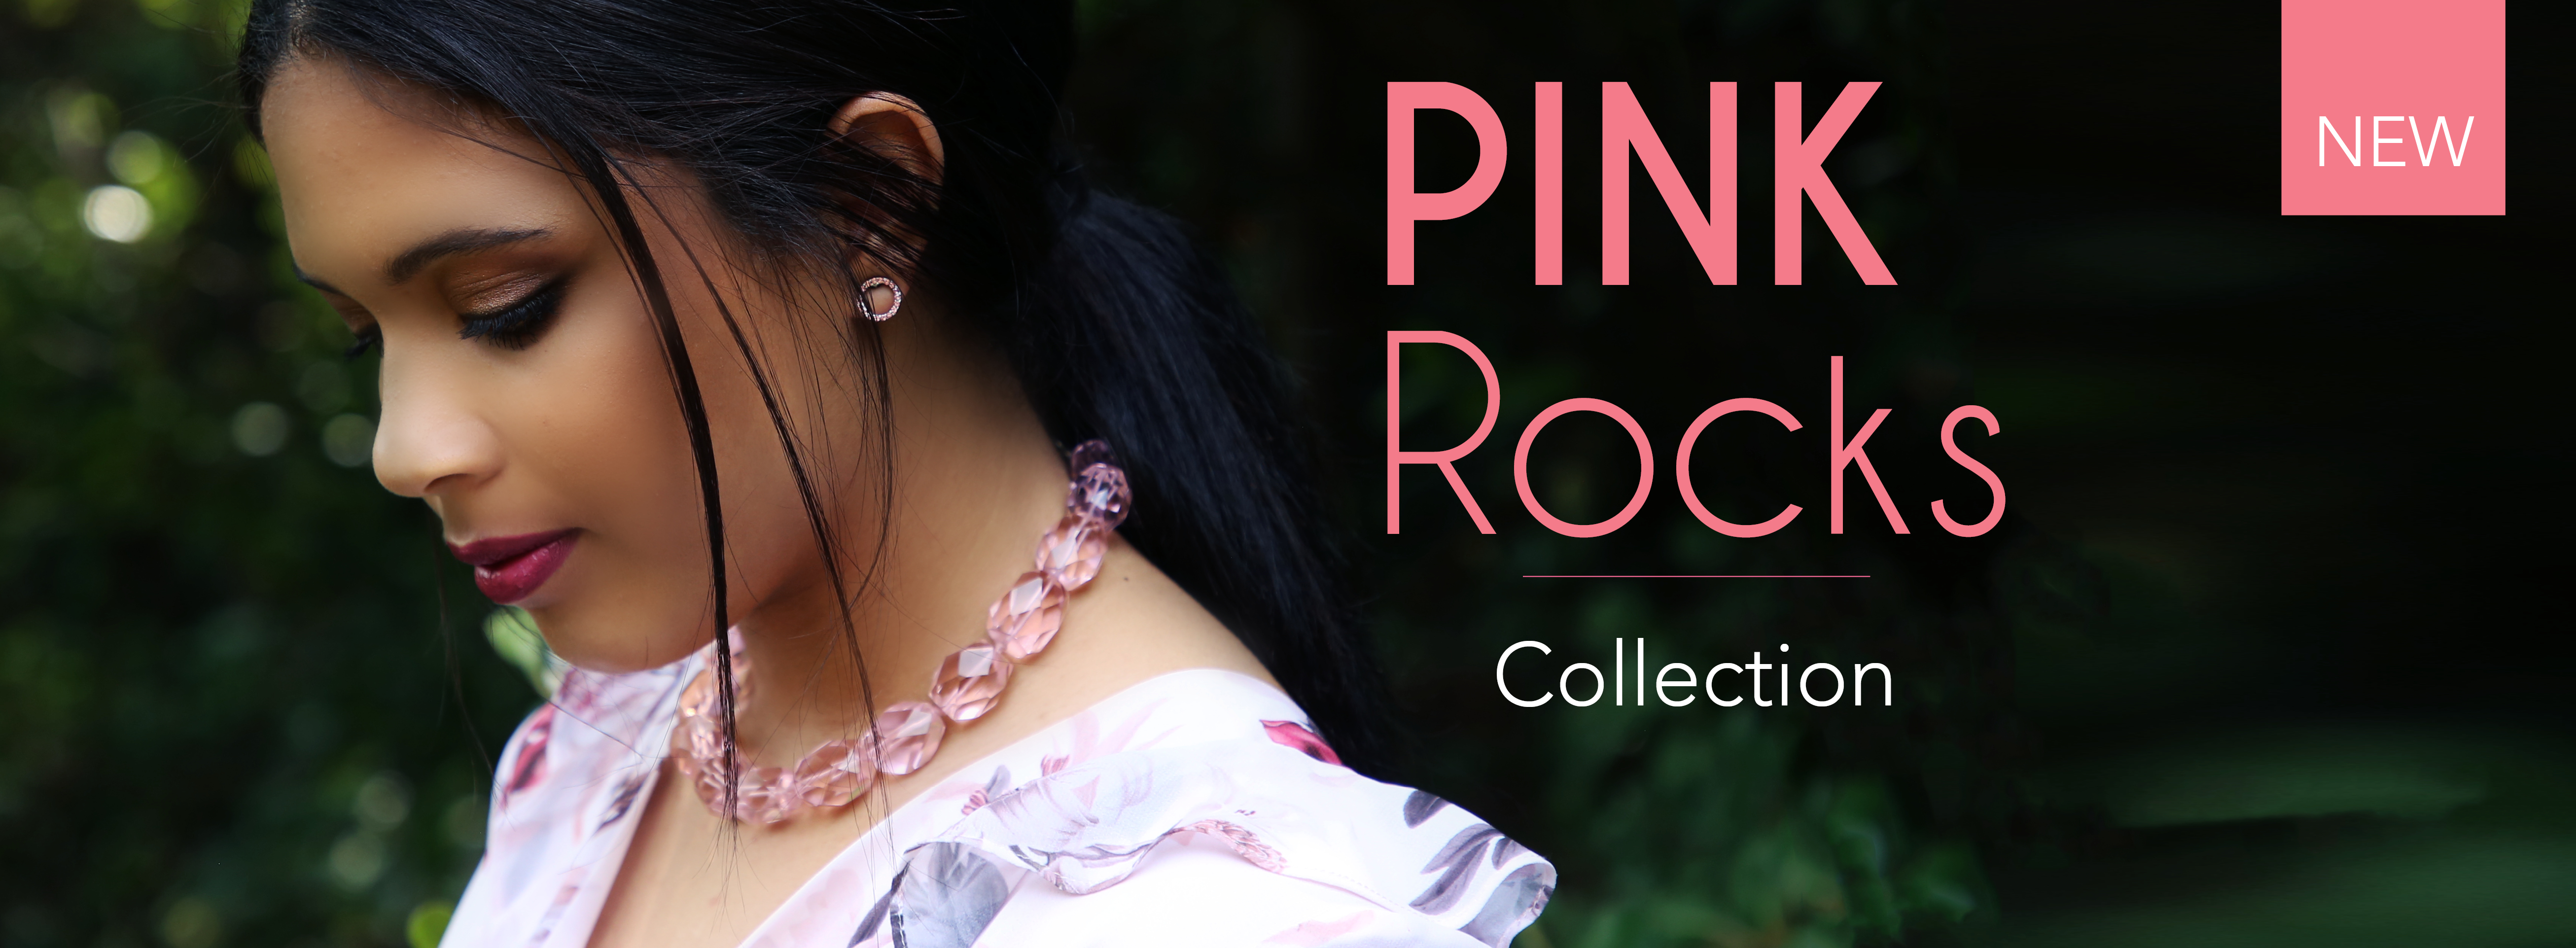 new-pink-rocks-collection-1.jpg